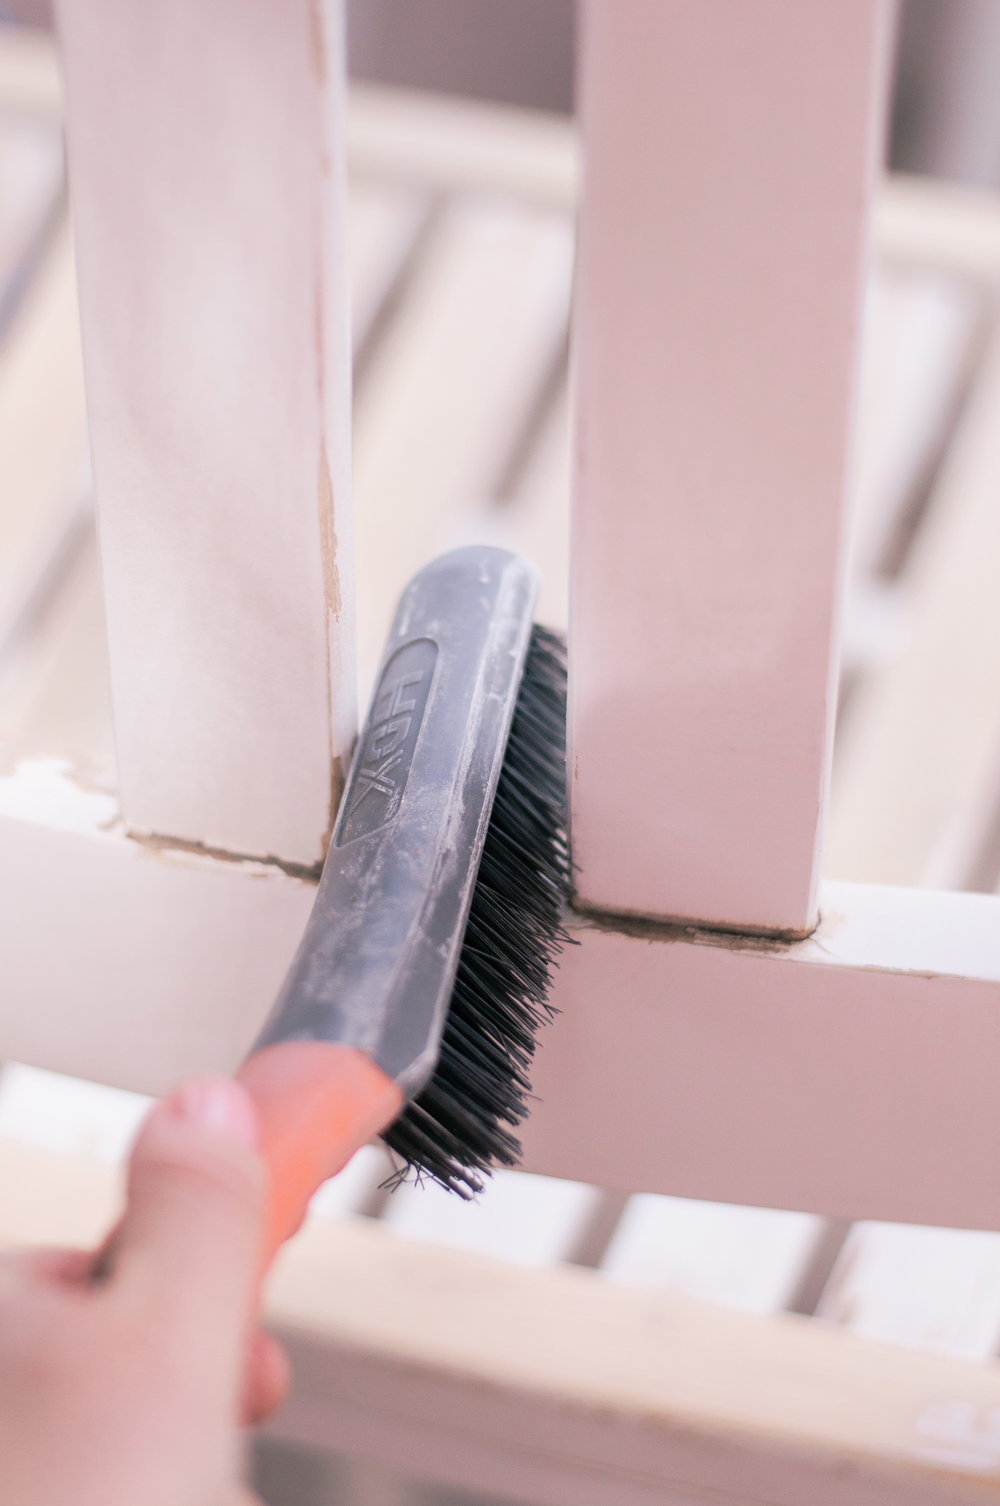 The Best Wire Brush for Wood DIY Paint Projects